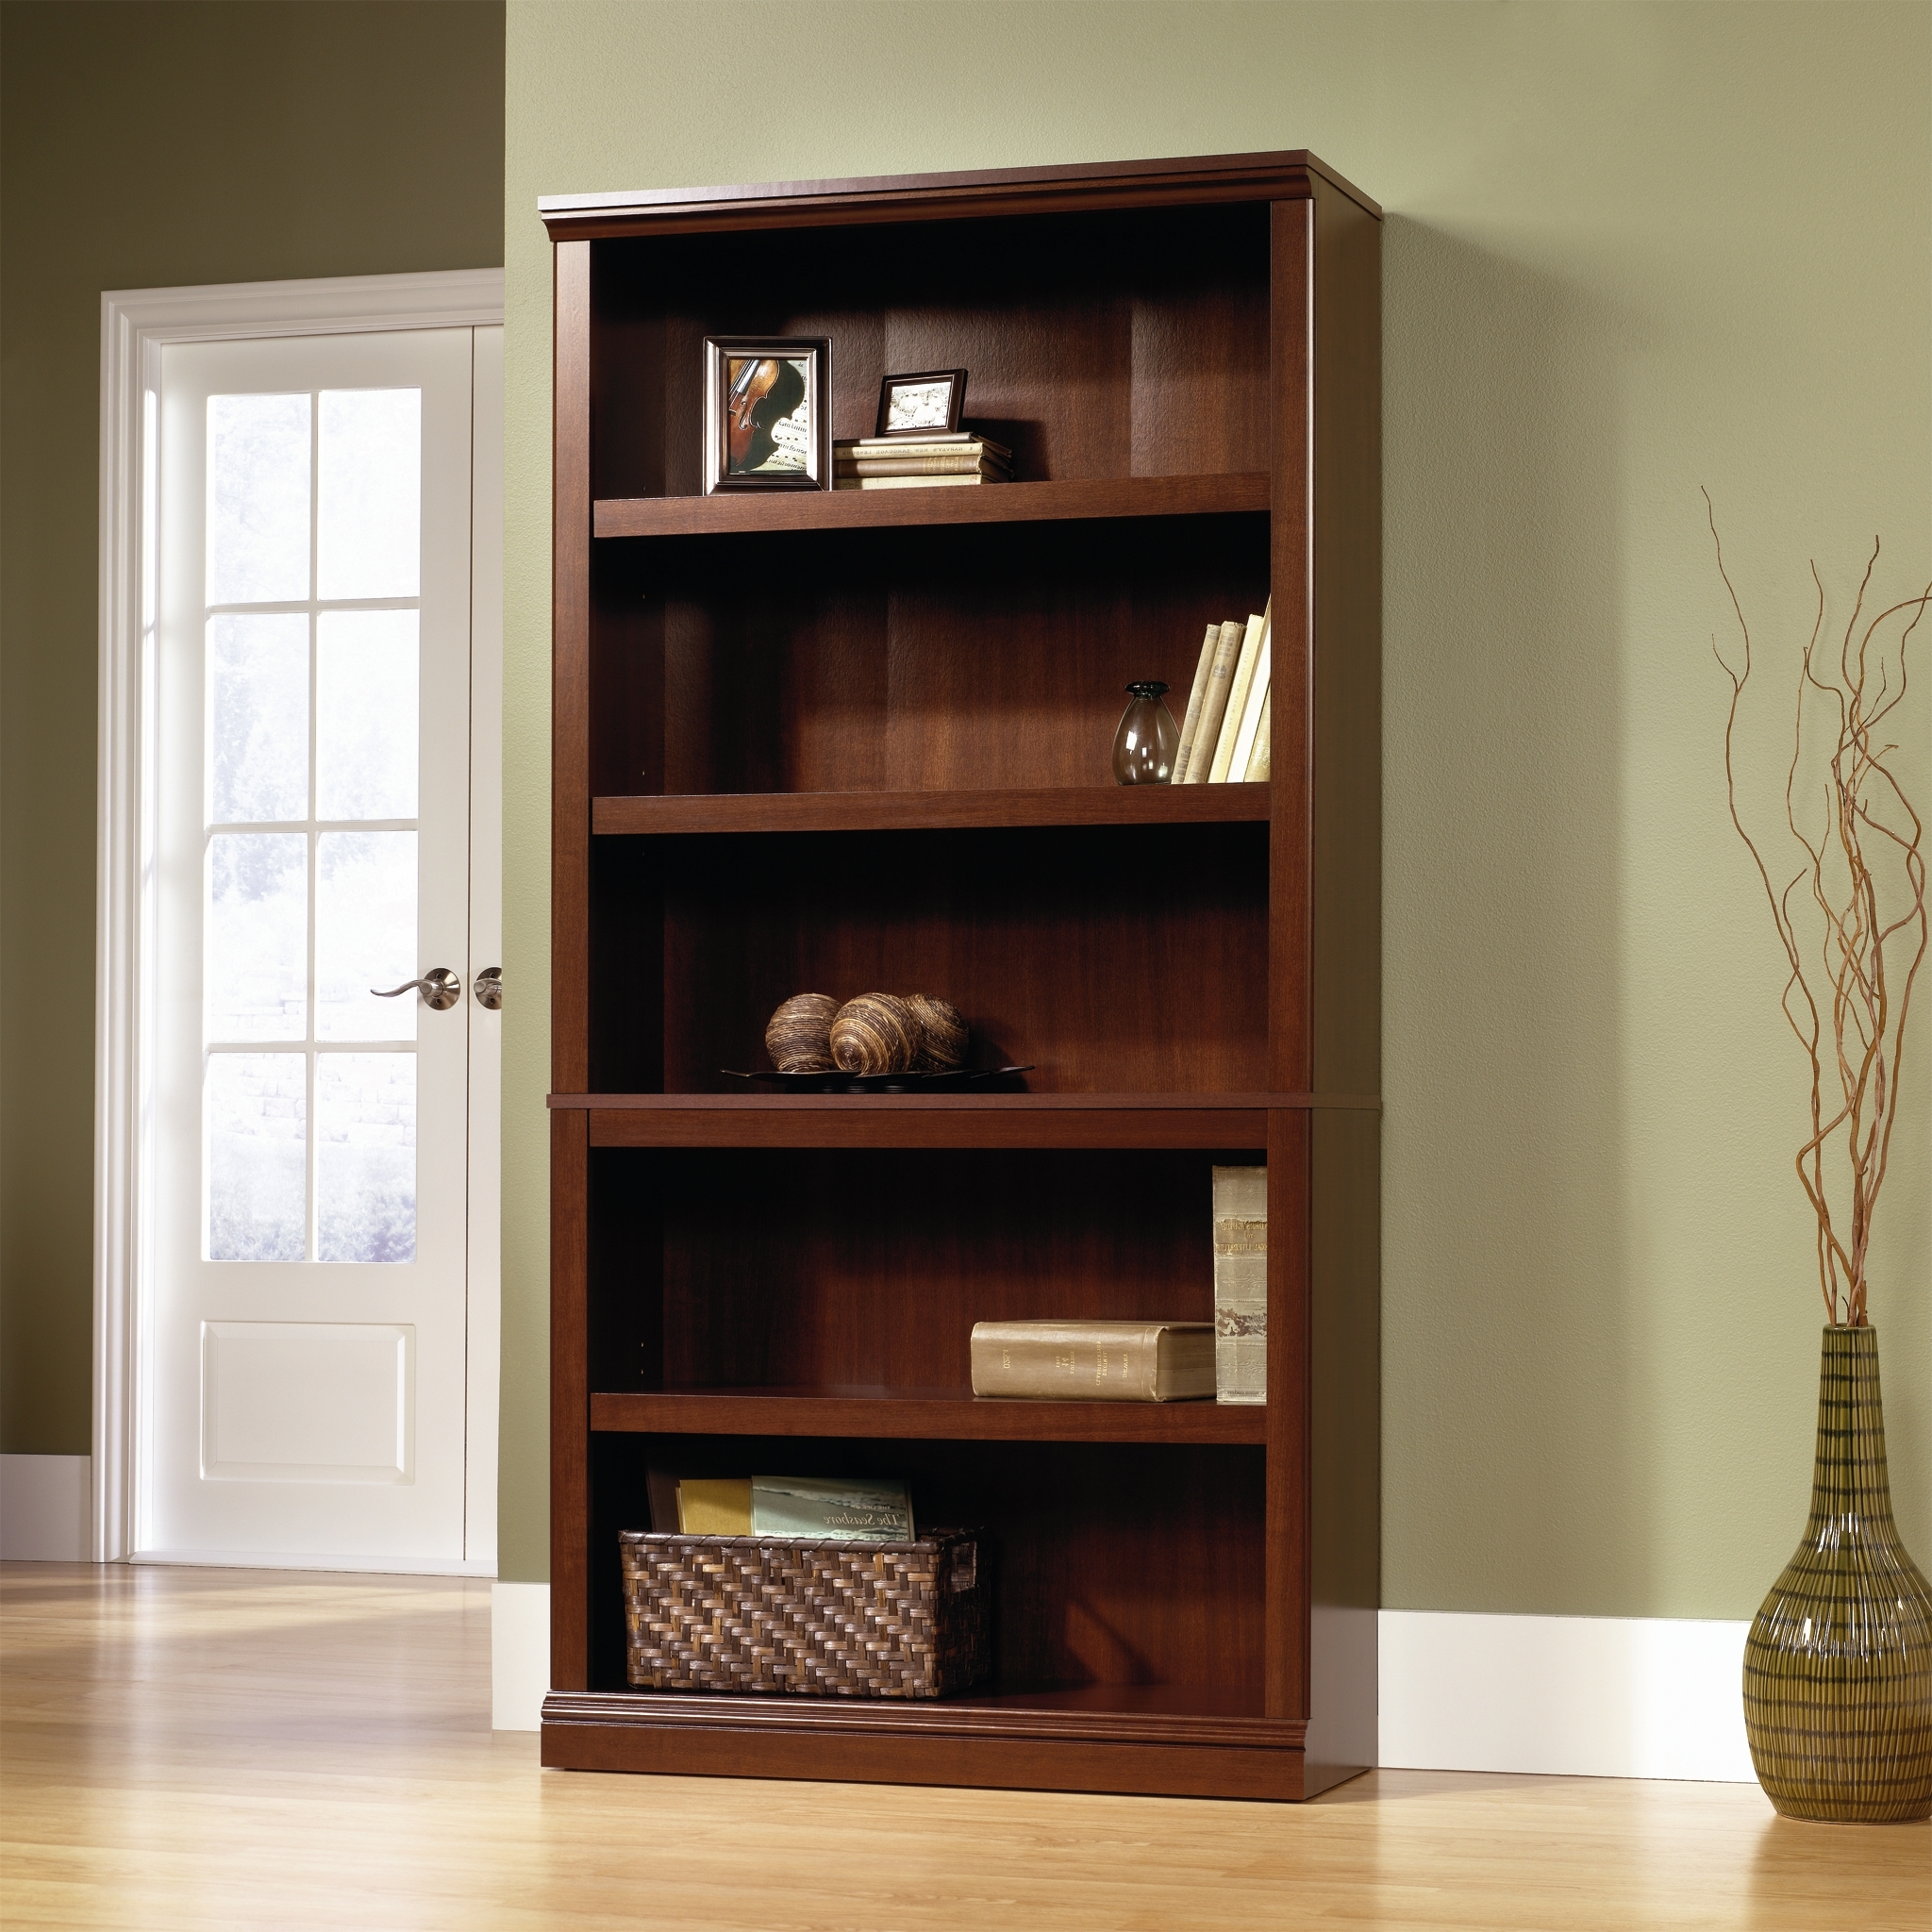 Newest Saunders Bookcases In Sauder Bookcases – Walmart (View 8 of 15)